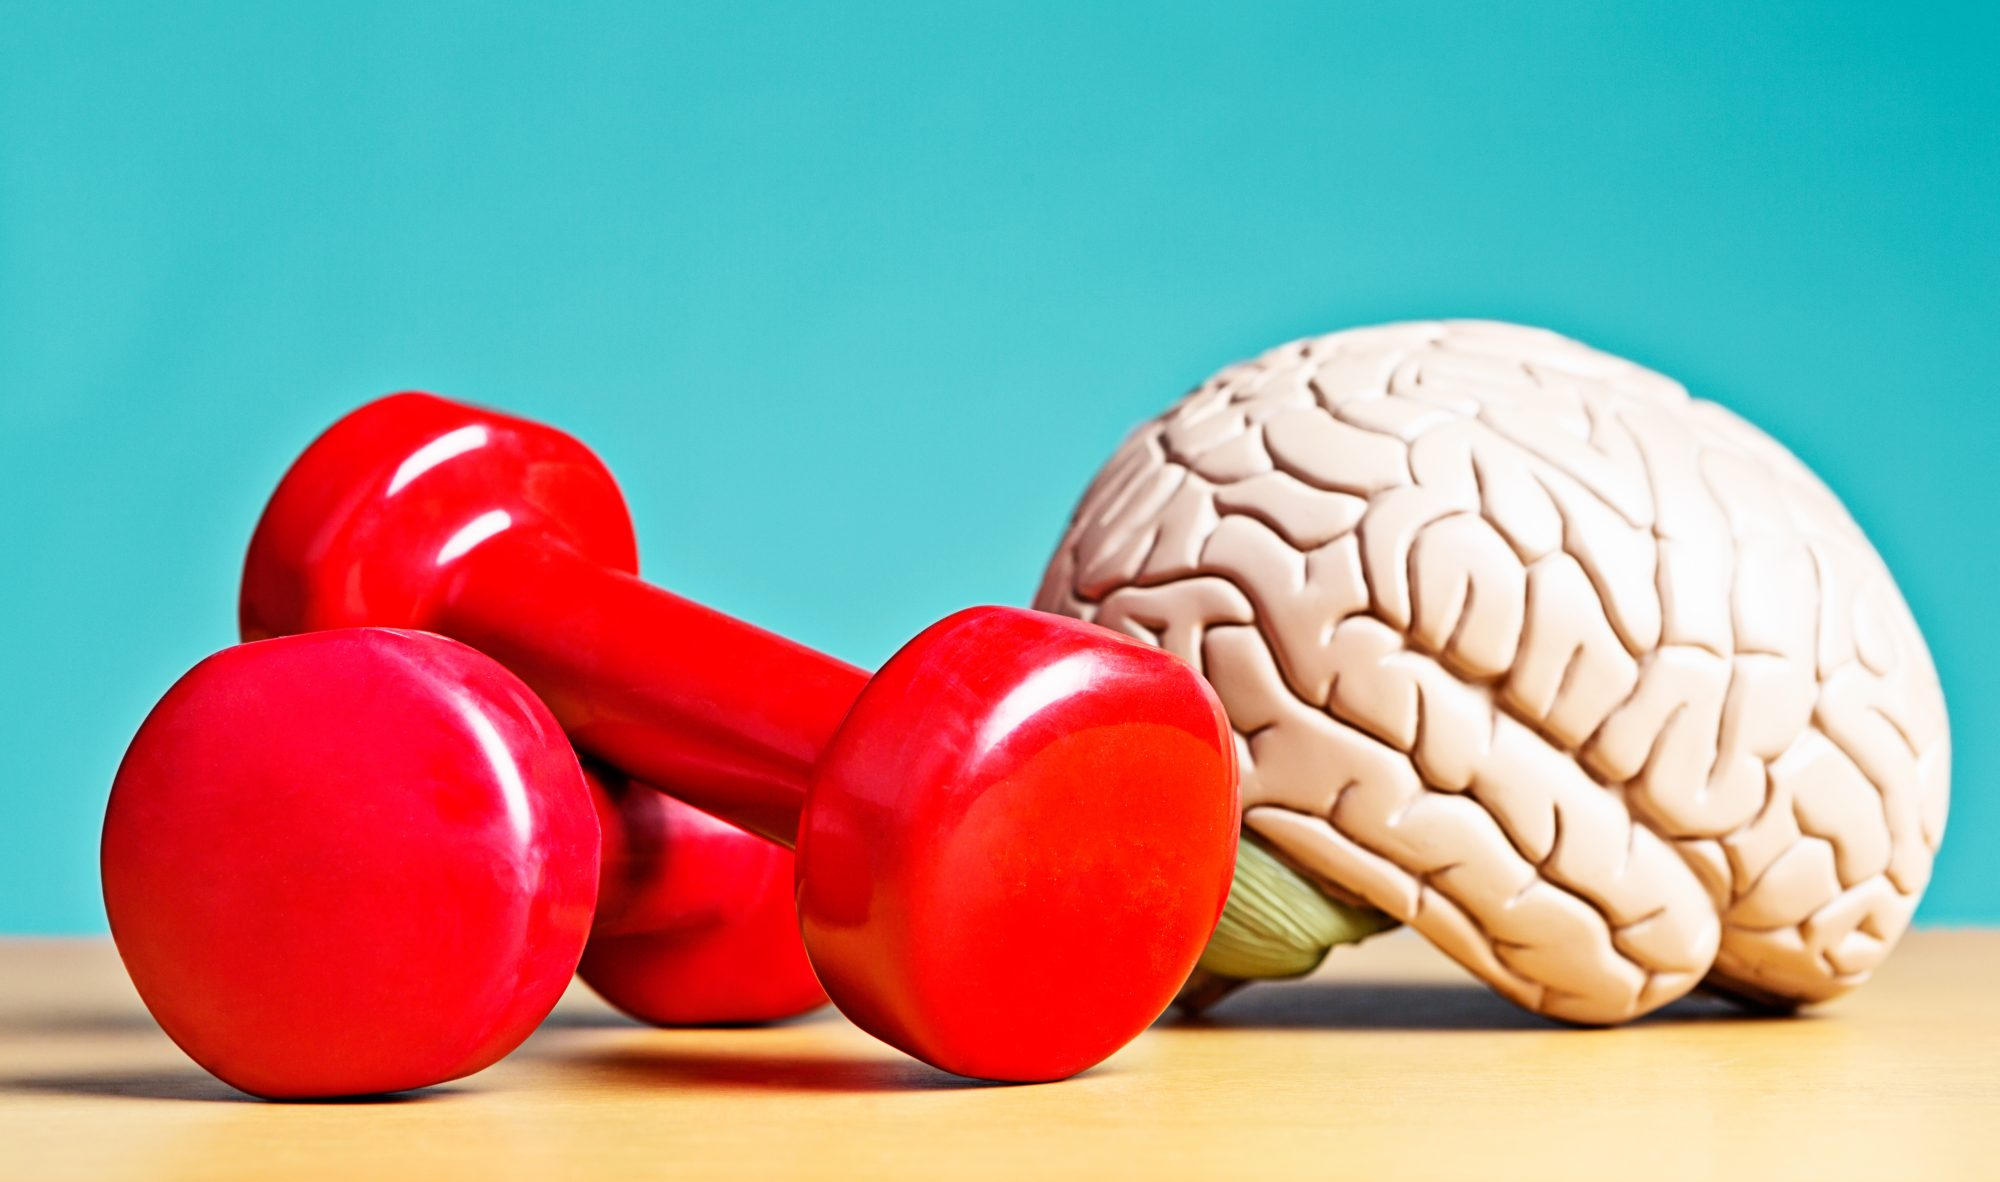 model brain with red dumbbells